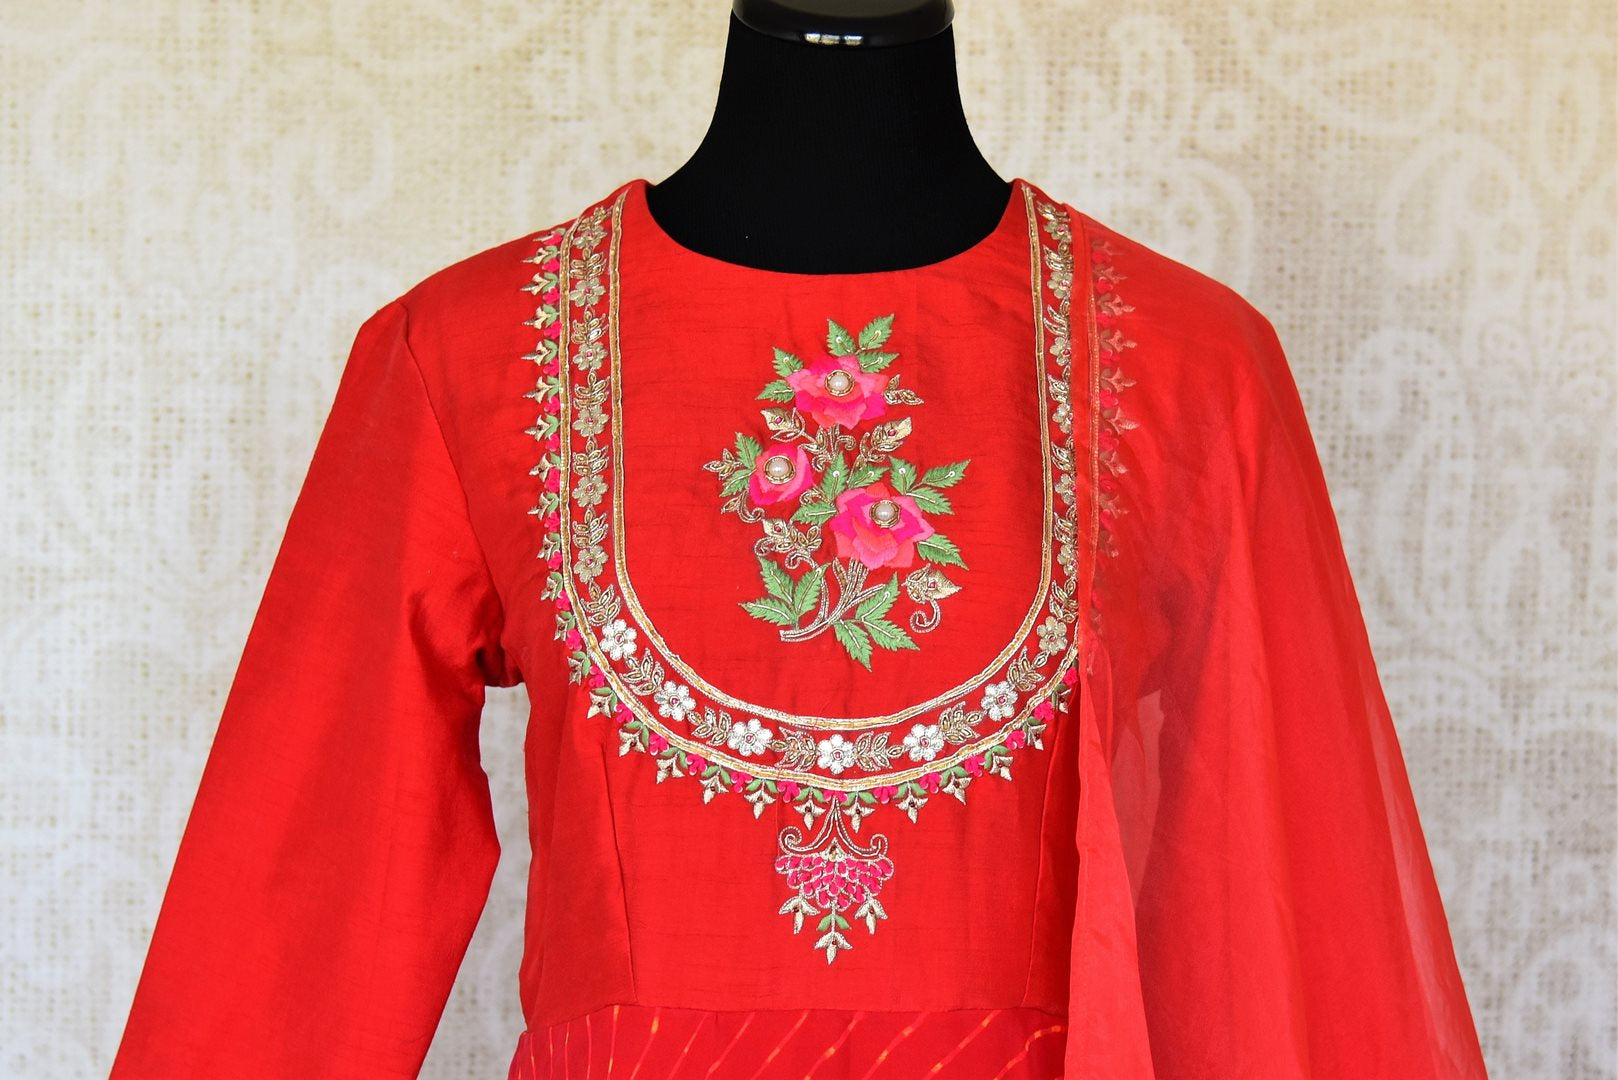 Shop red silk georgette embroidered Anarkali suit online in USA. Be the talk of weddings and special occasions with a splendid collection of Indian designer suits from Pure Elegance Indian clothing store in USA. We have a spectacular range of designer dresses, designer lehengas for Indian women in USA.-front